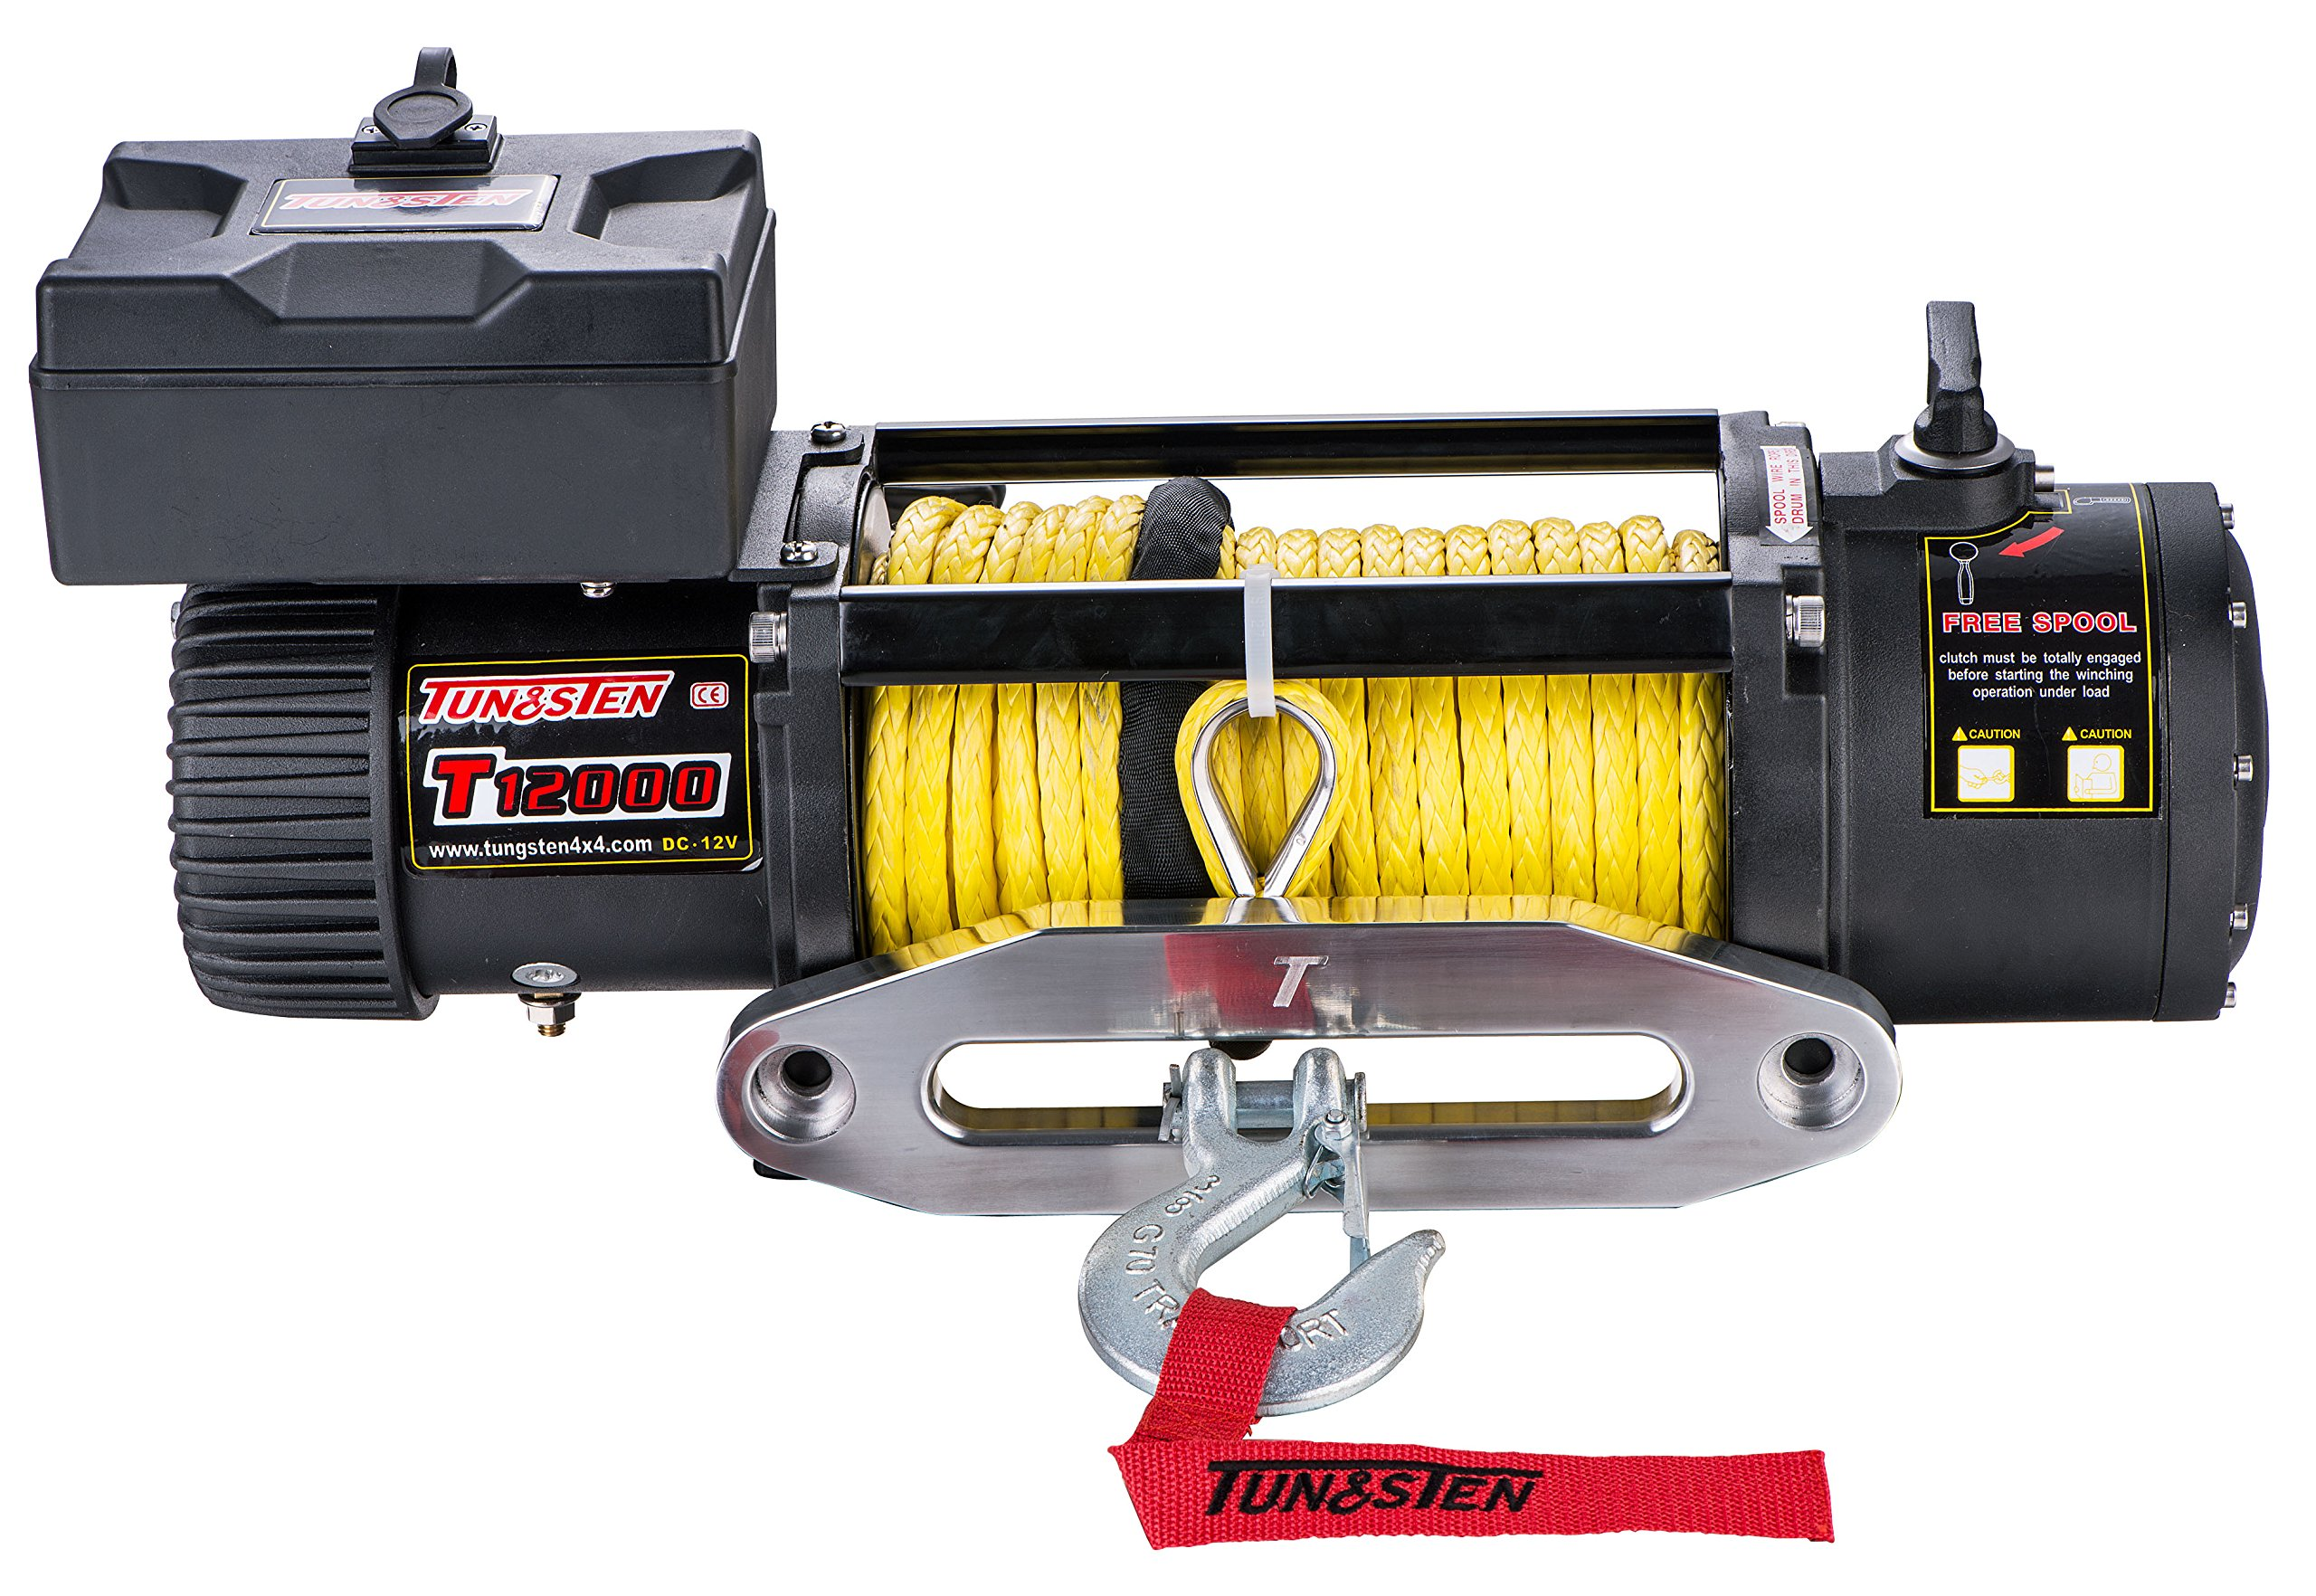 Tungsten4x4 T12000S Offroad 12000 lbs Load Capacity Electric Winch with Synthetic Rope, Hawse Fairlead and Handheld Remote